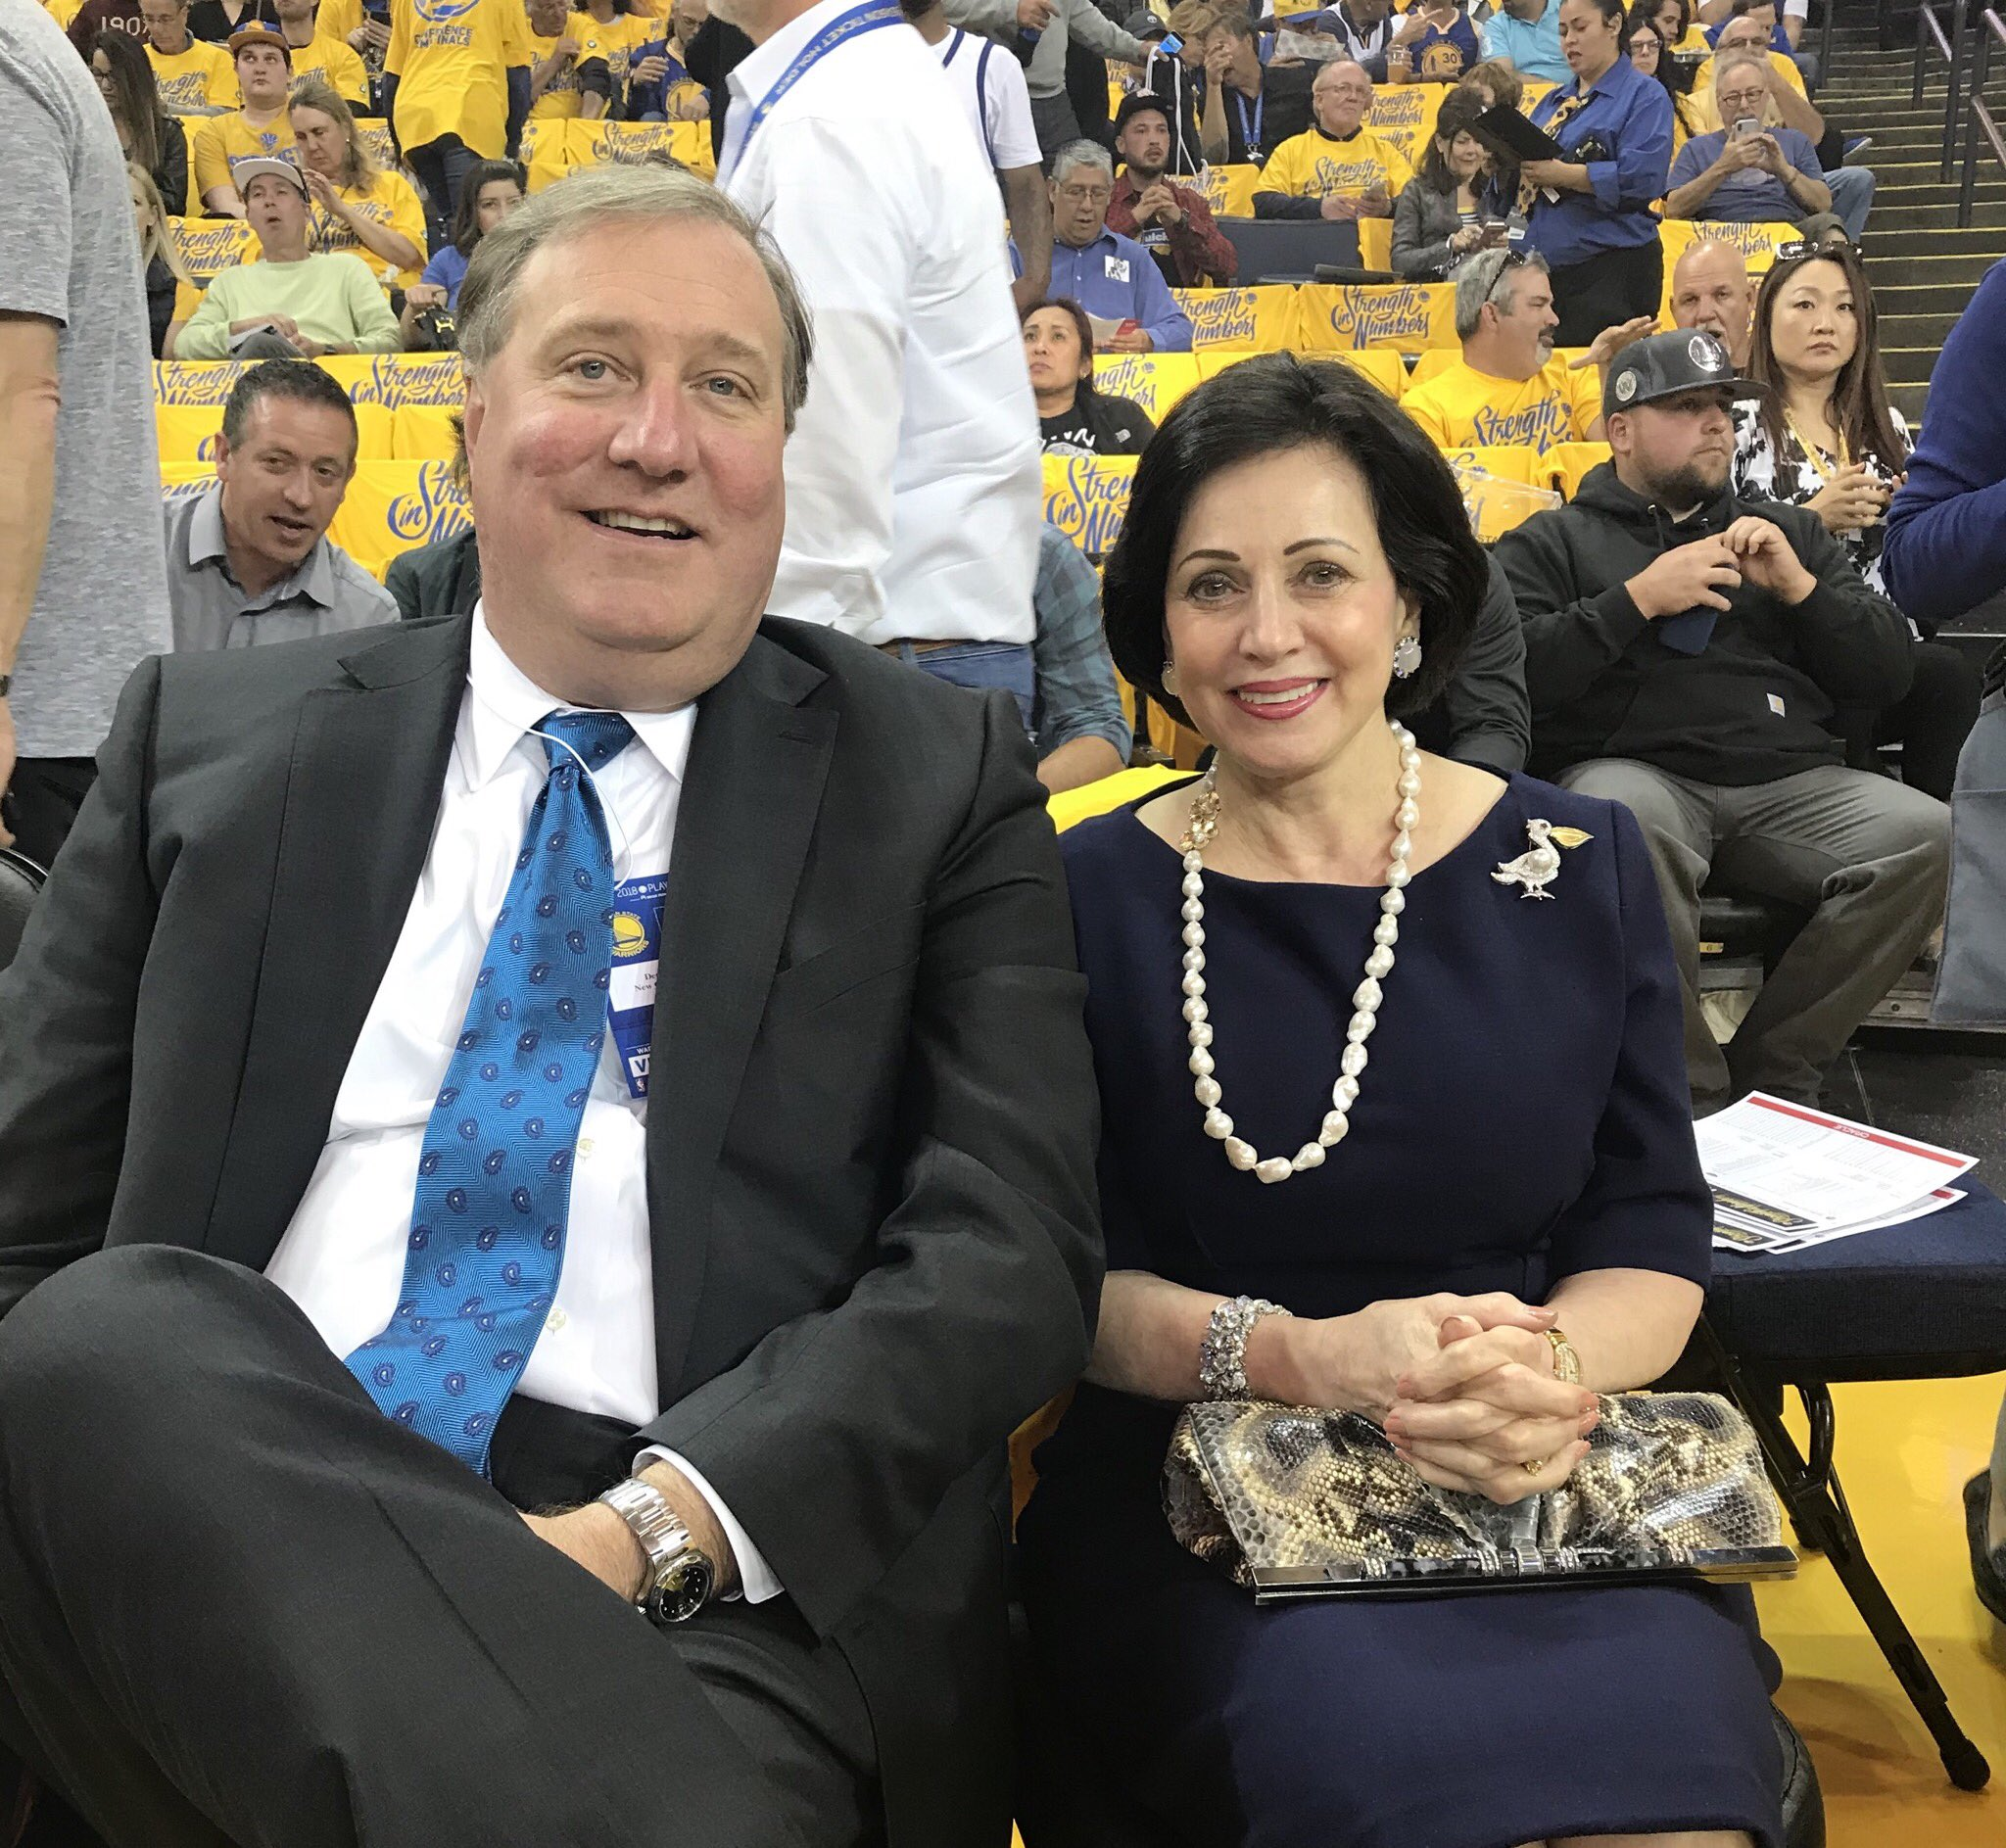 #Pelicans Owner Mrs. Benson and Team President Dennis Lauscha at Game 5 ��  #doitBIGGER https://t.co/hP4UlP1CtR